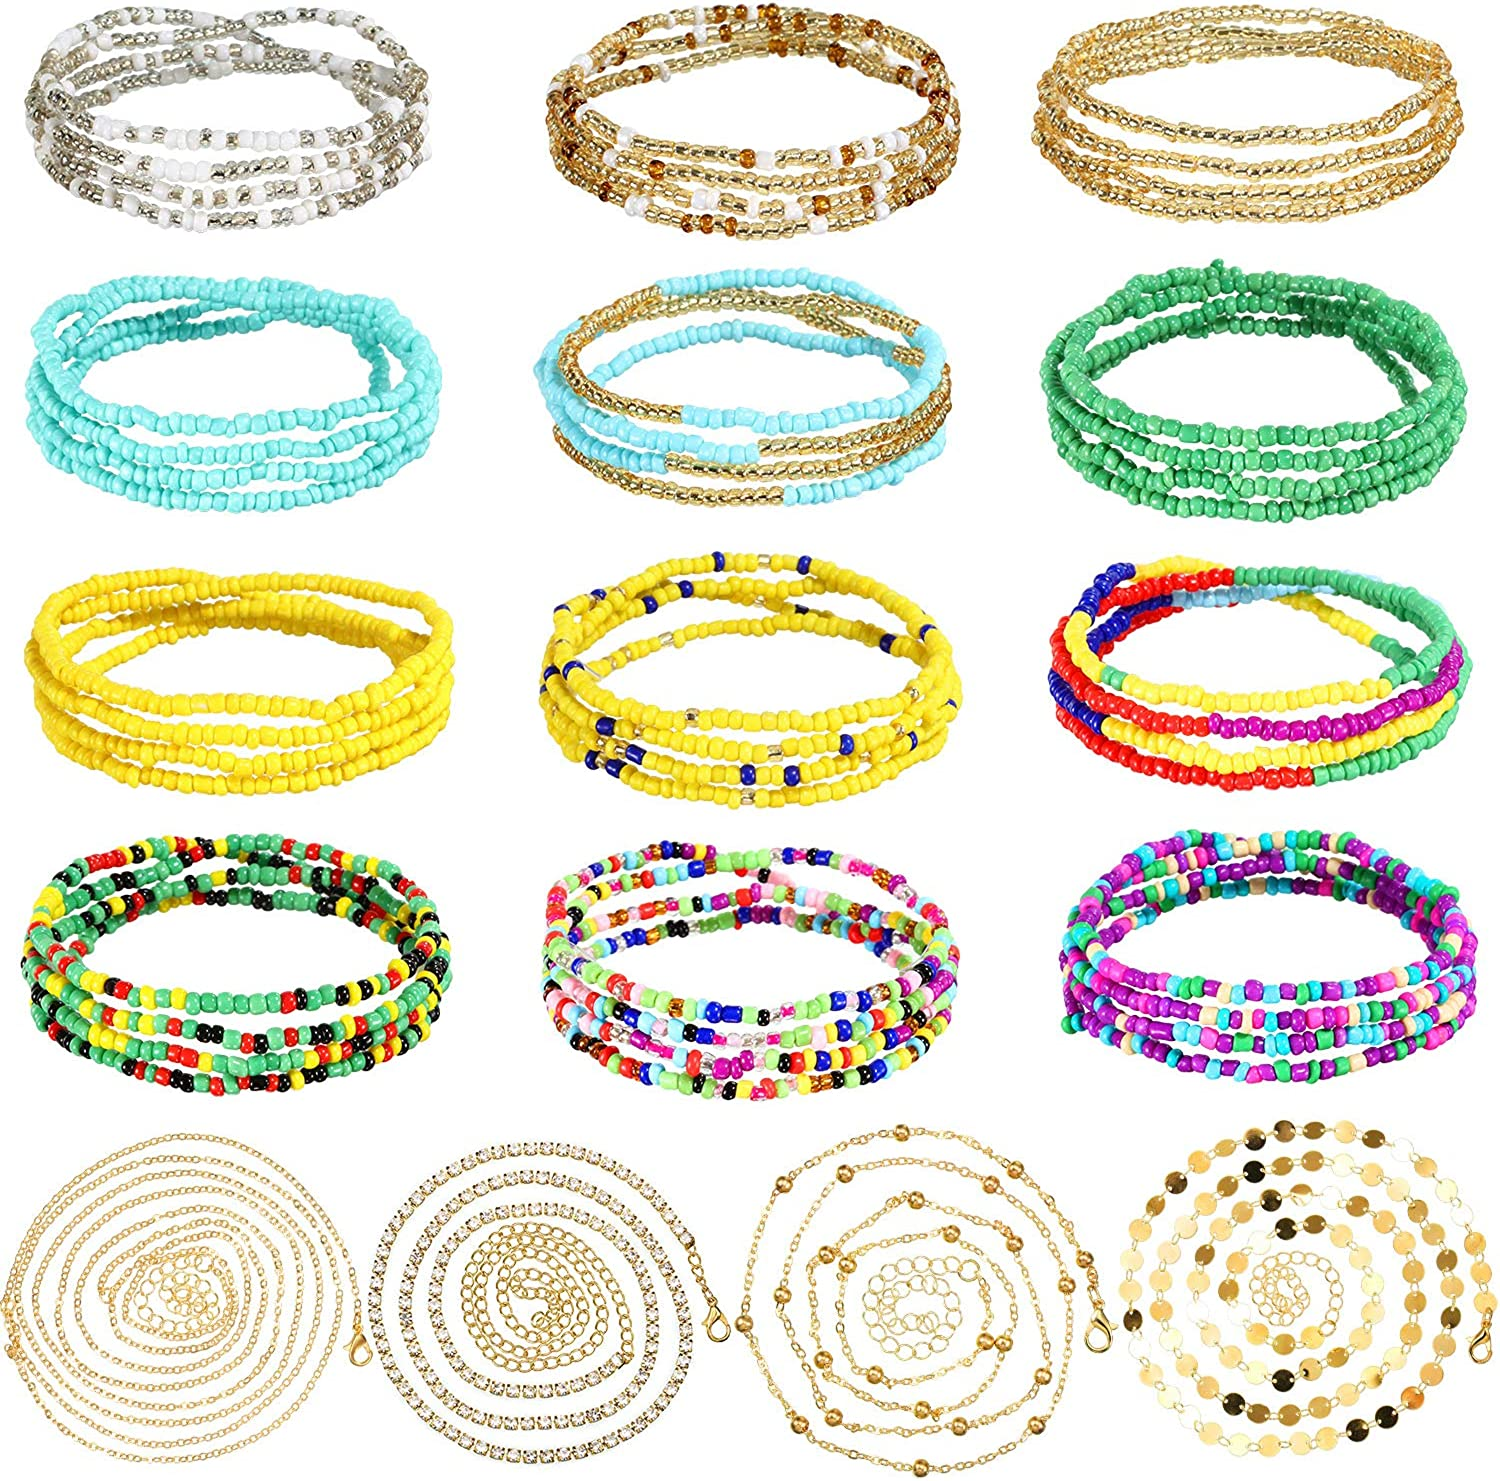 16 Pieces Waist Bead Chains Summer Elastic African Belly Beads Bikini Beach Body Belly Chain Colorful Jewelry for Women